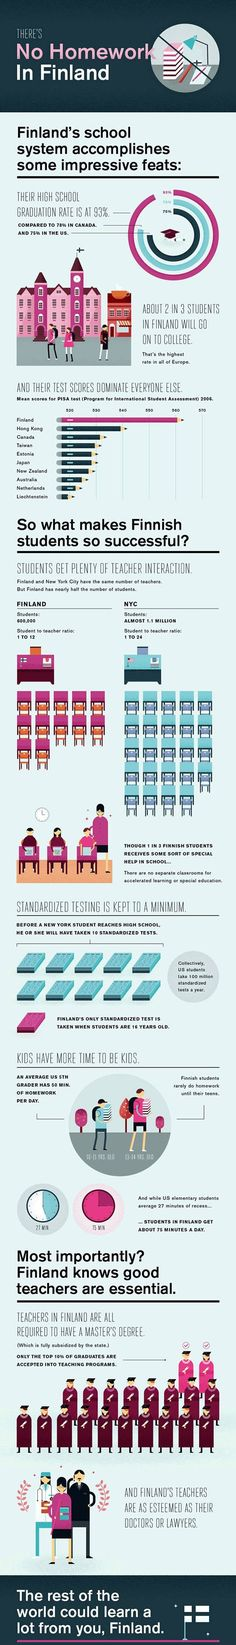 Finland School Infographic~  Less homework, smaller classes, longer recess, and fewer tests.  Society respects teachers and provides free access to masters programs for educators.  The result?  More high school graduates, more college-bound students, and higher test scores... than any other country!